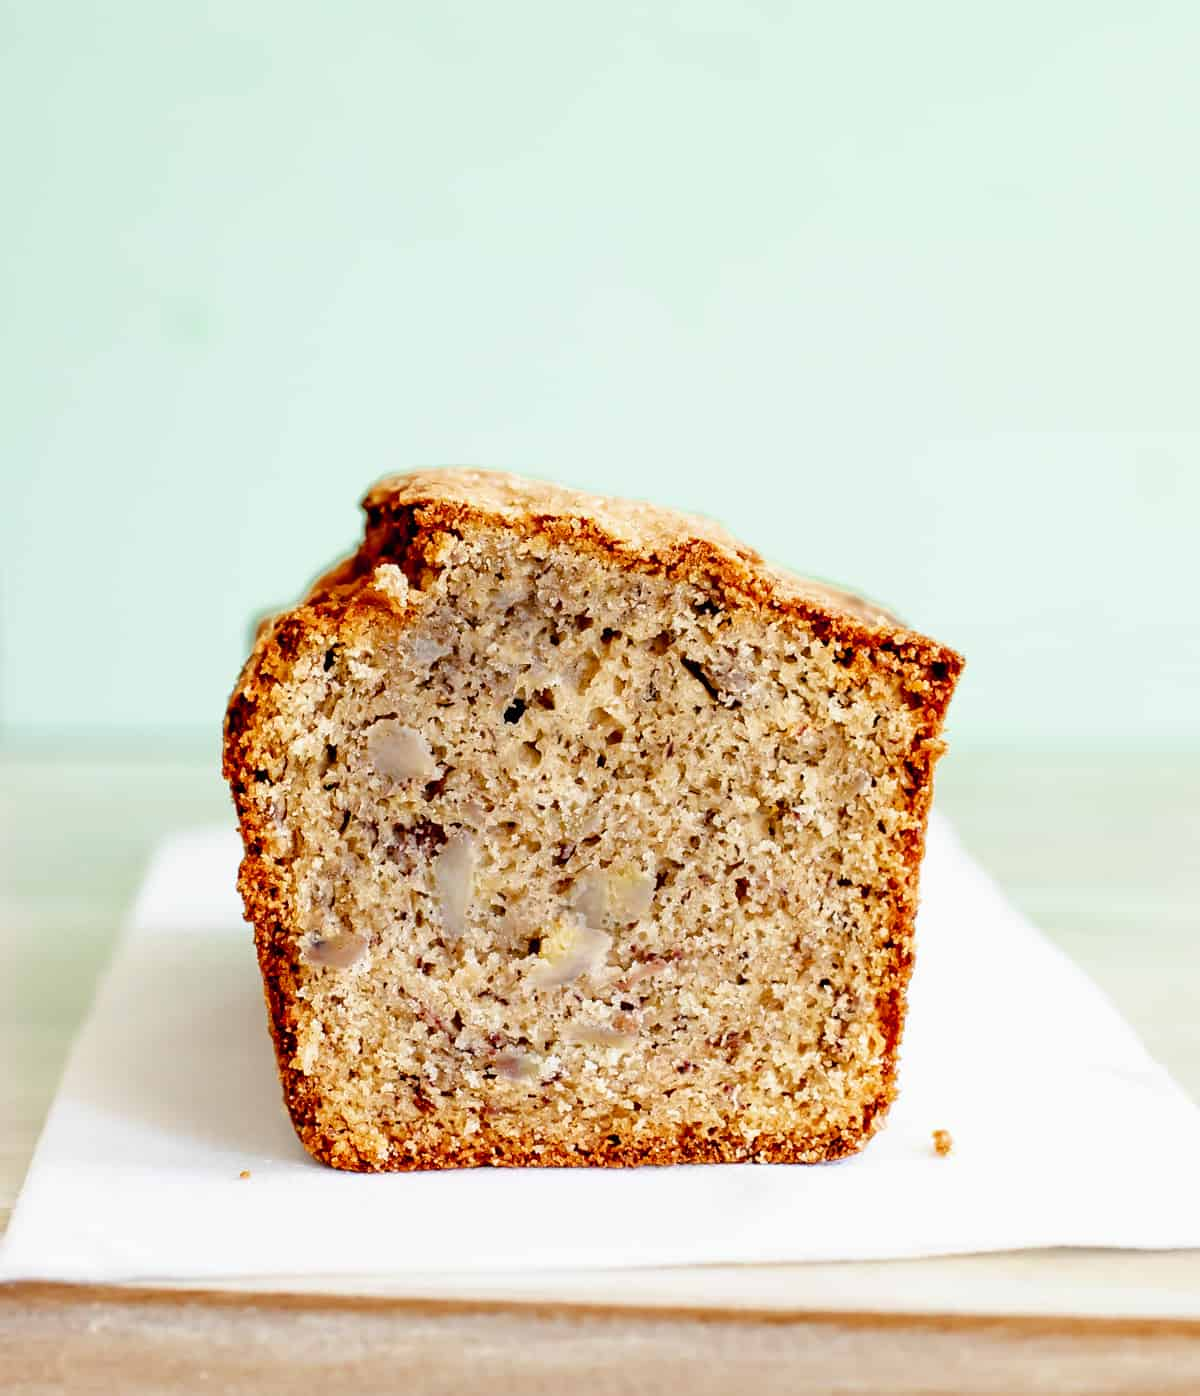 Half loaf of banana bread on beige surface and background